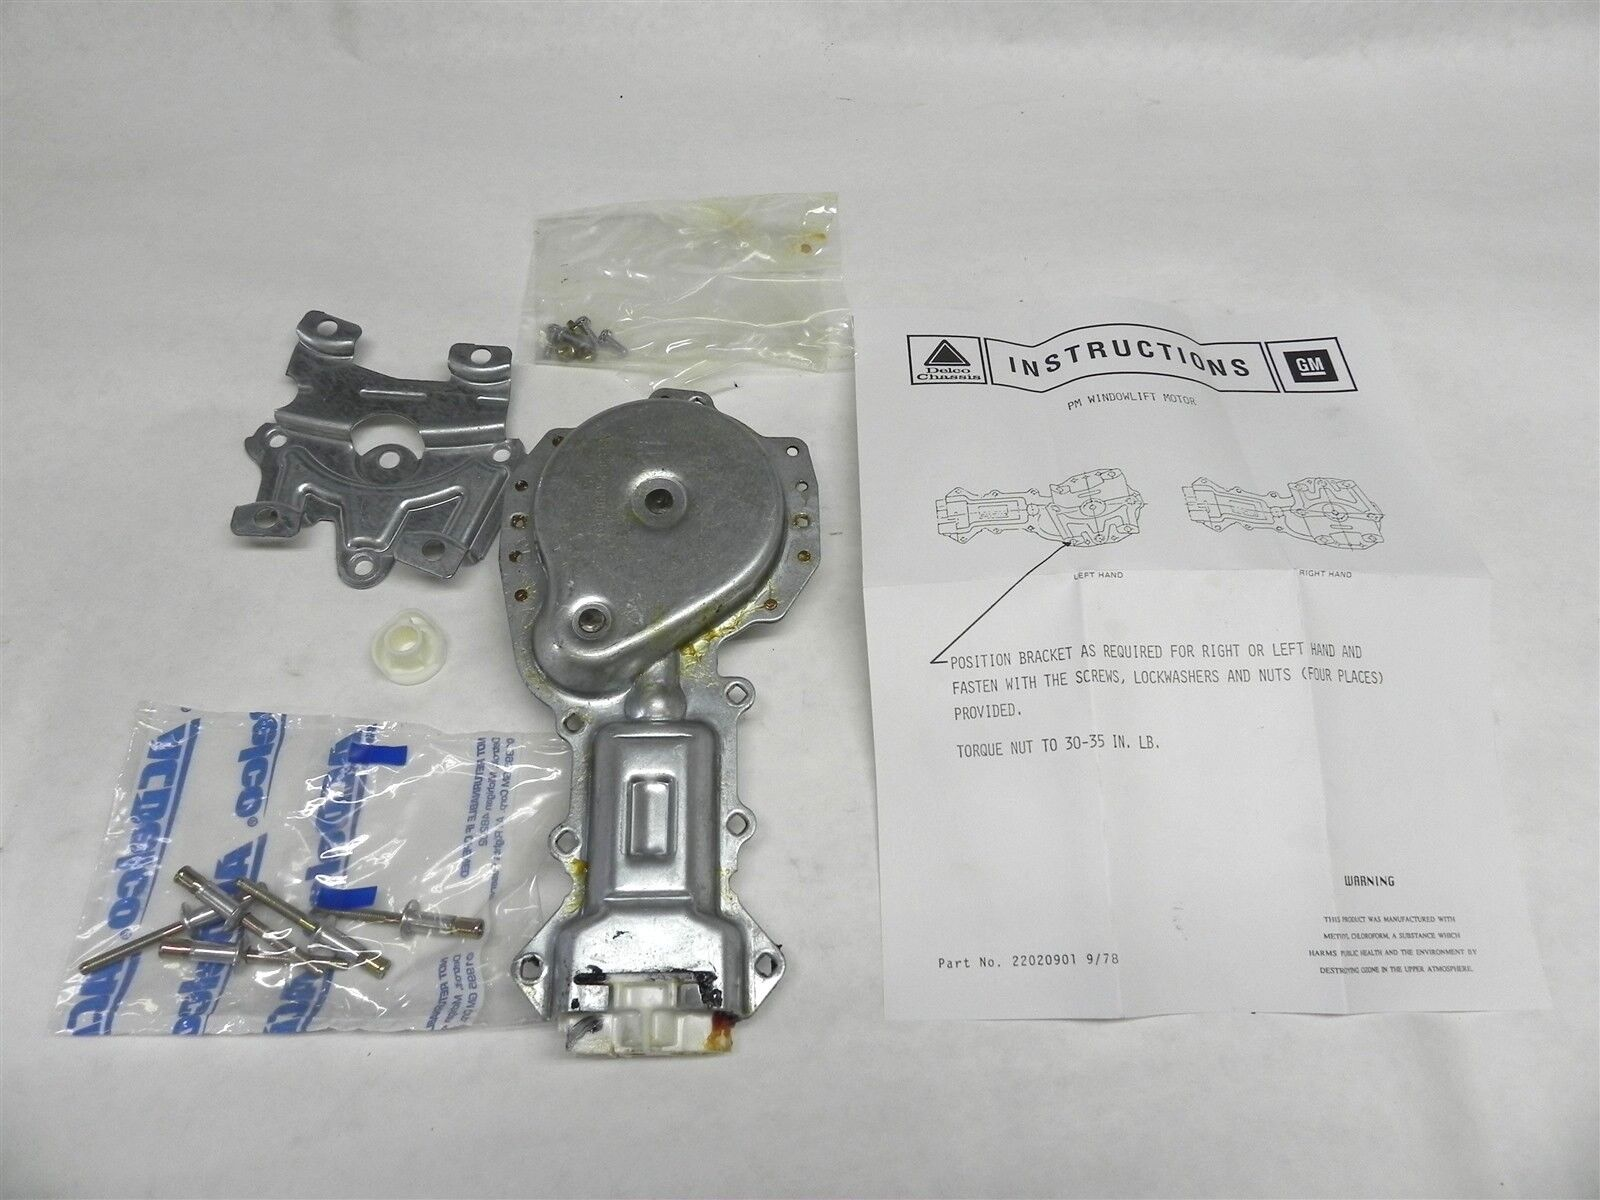 Details about AC DELCO WINDOW LIFT REGULATOR MOTOR KIT FOR GM VEHICLE GM  PART NUMBER 12512994